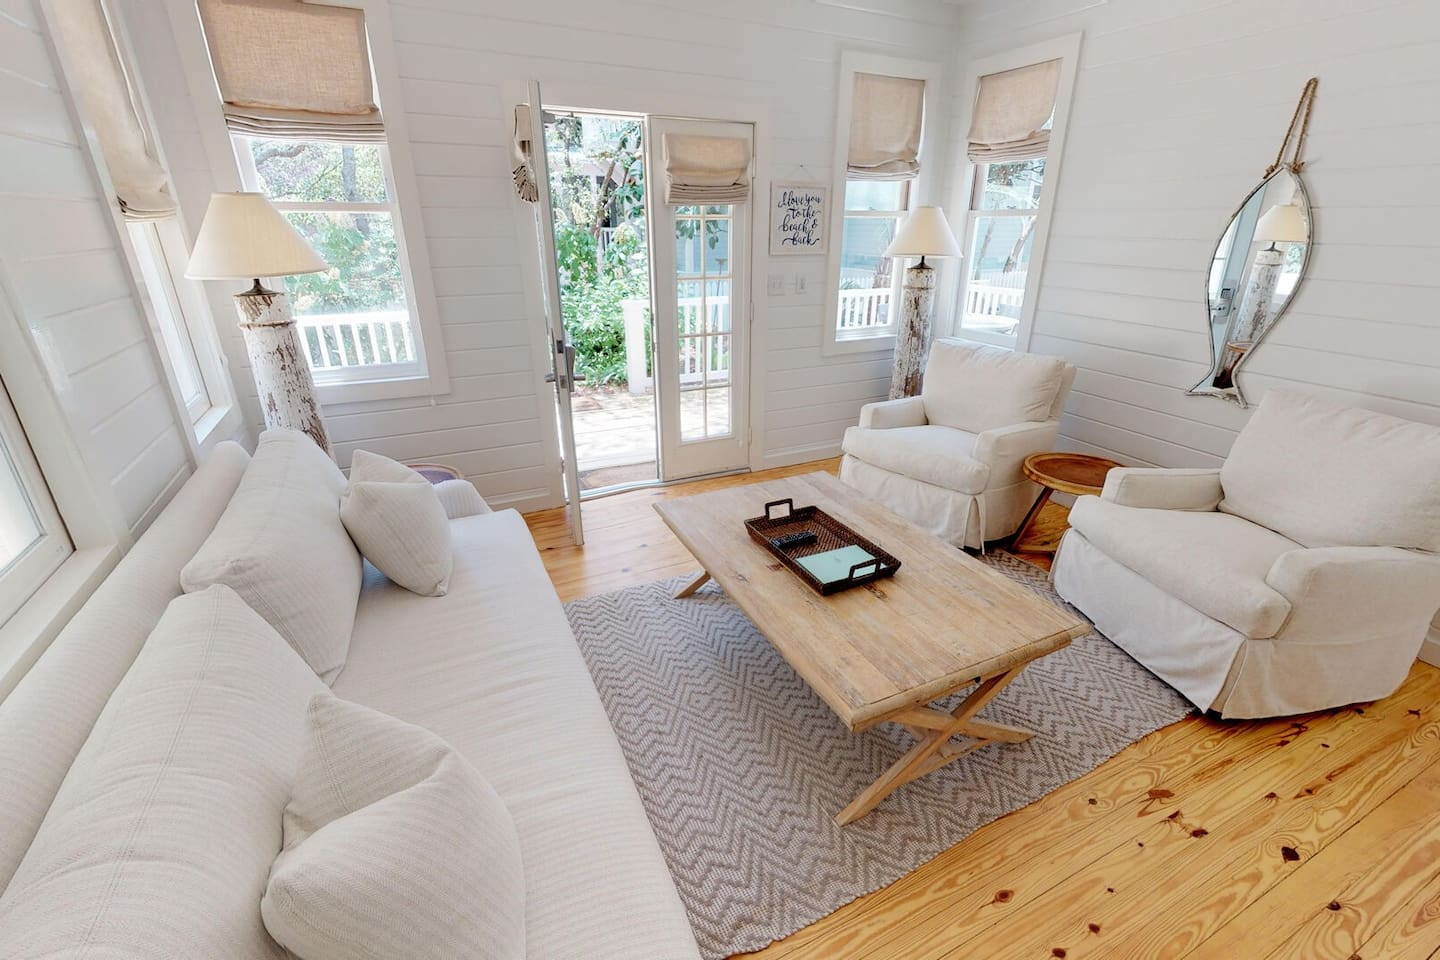 Living Space welcoming you to 'Sea Shack'